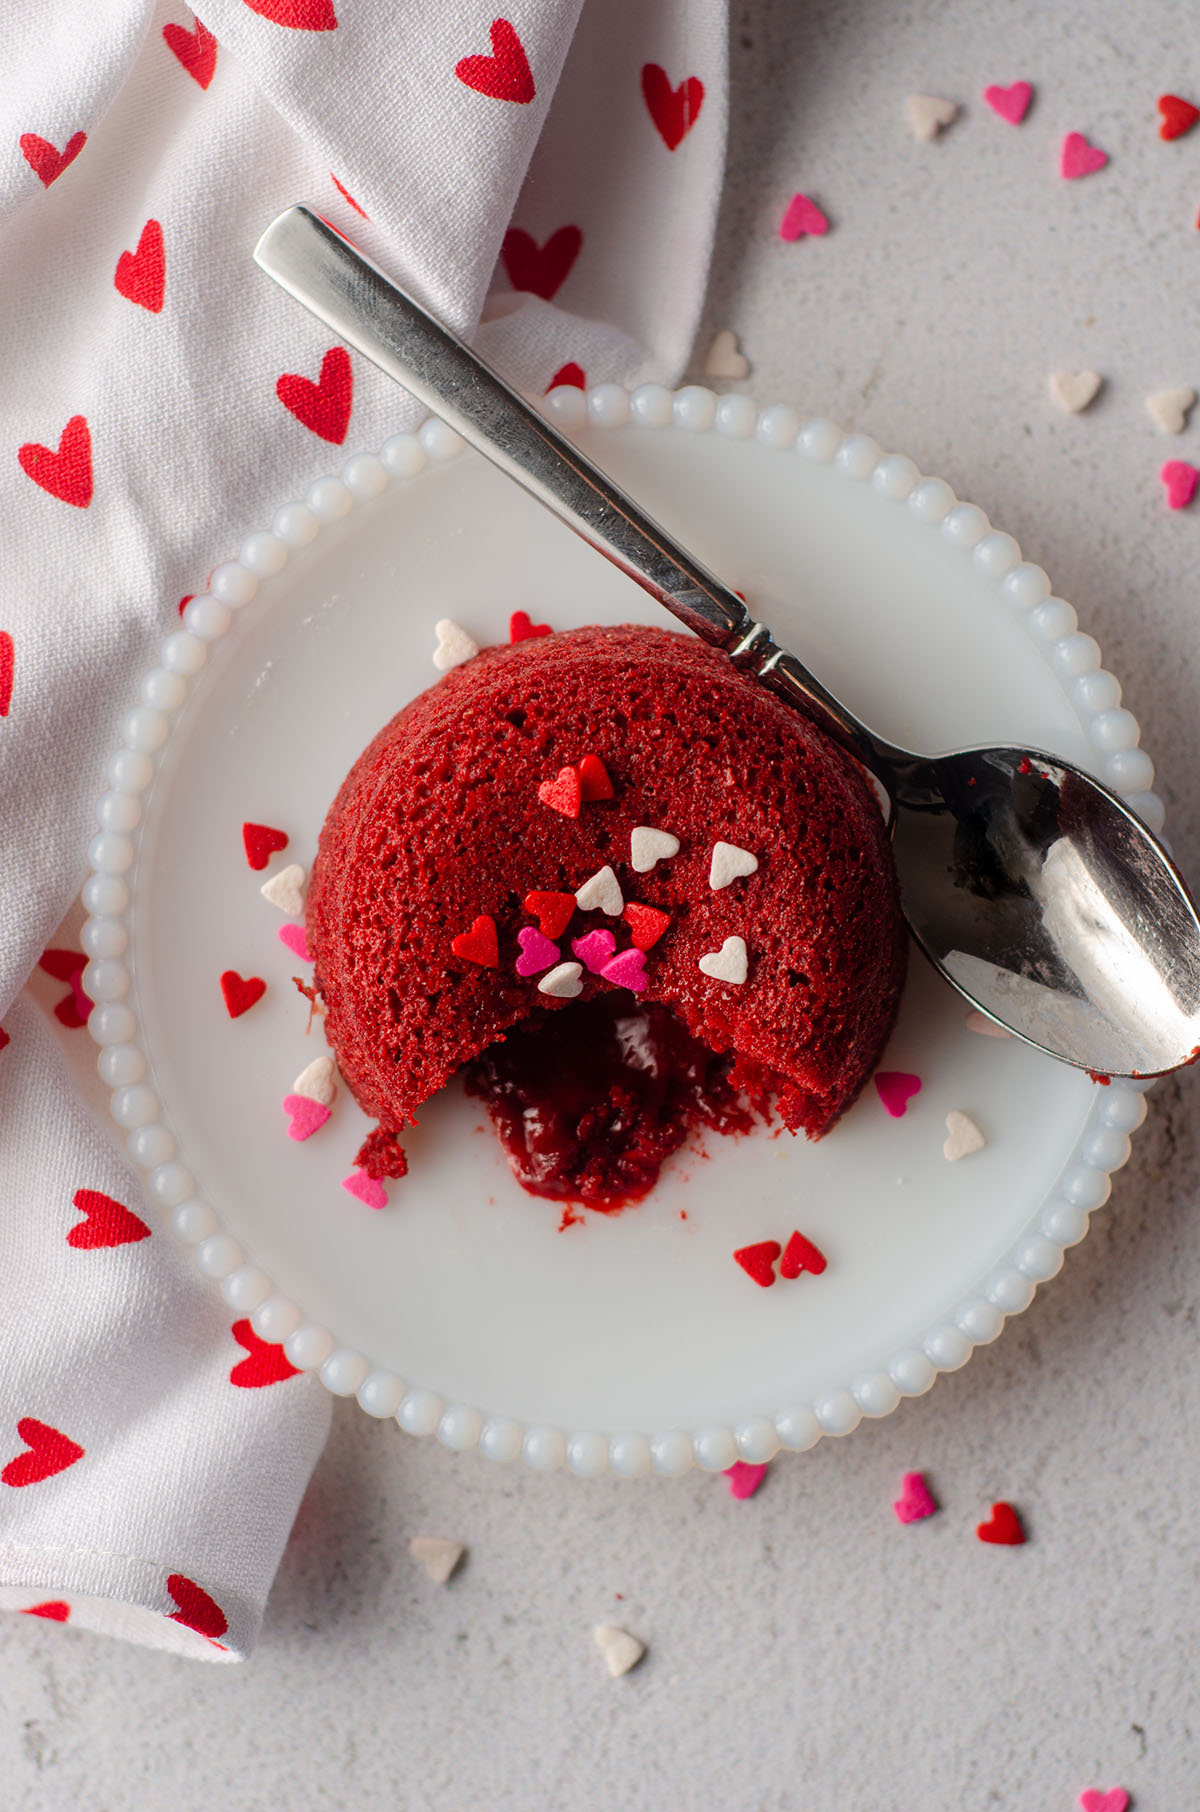 aerial photo of red velvet lava cake sitting on a white plate with heart sprinkles on top of it